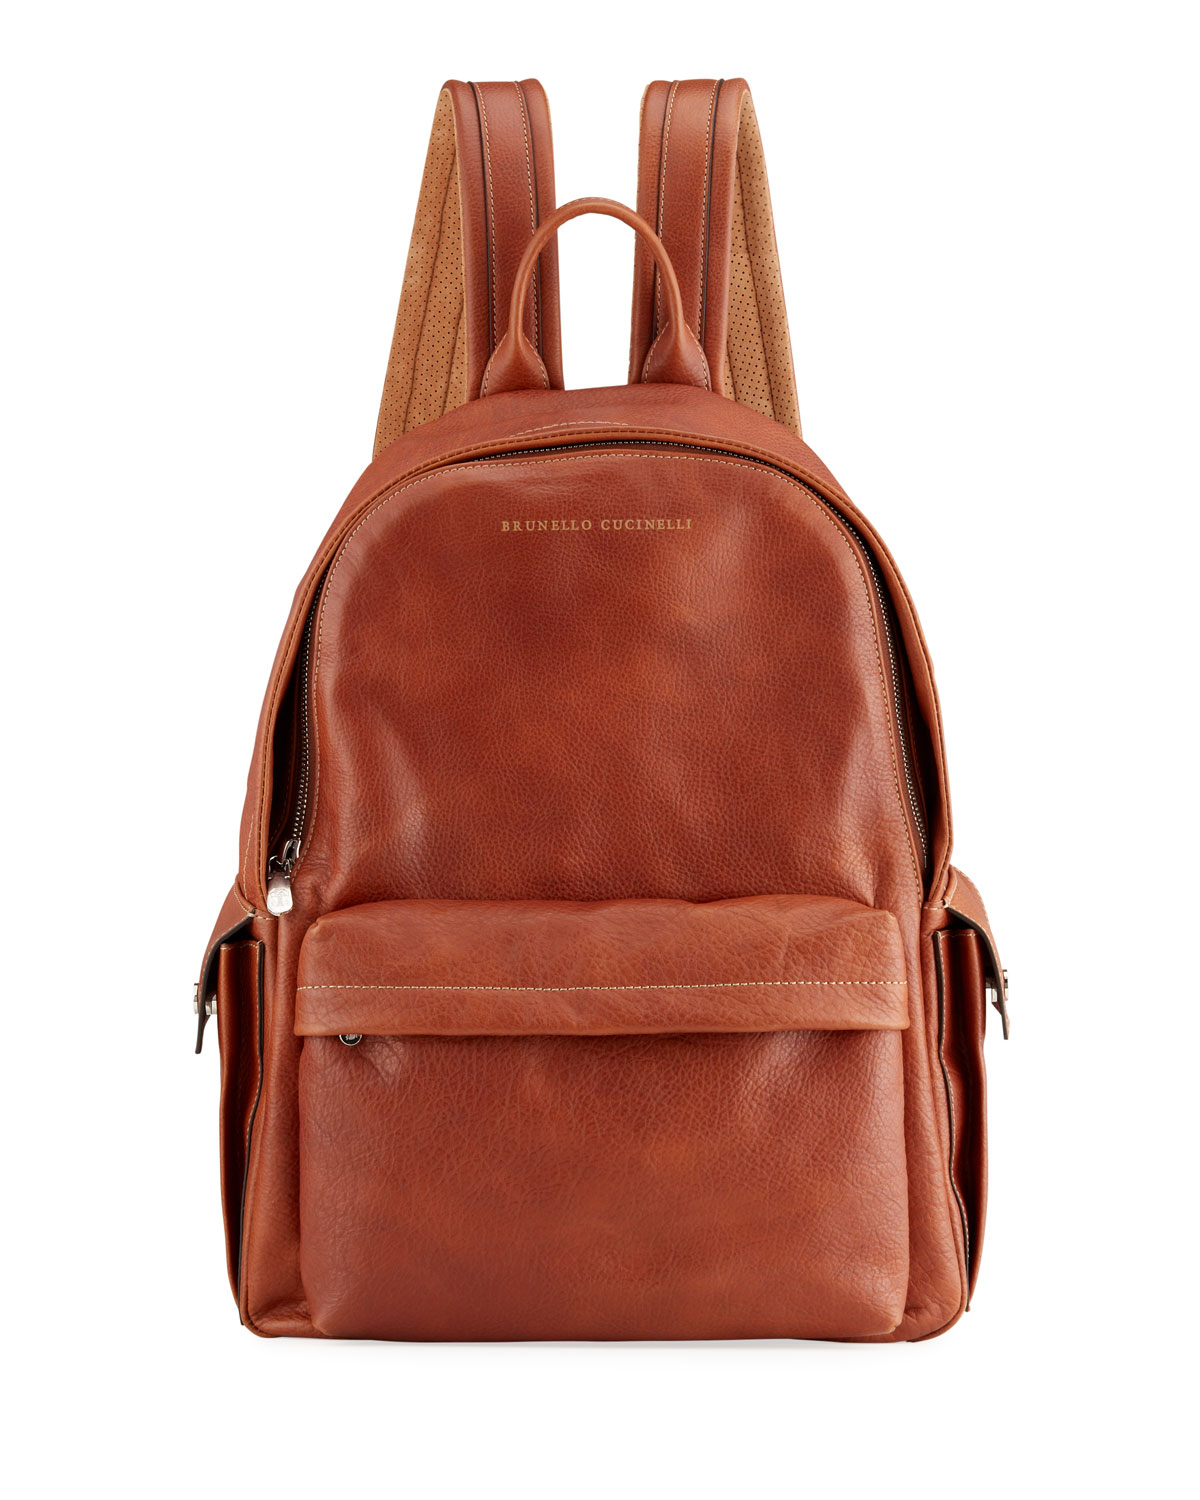 Brunello Cucinelli MEN'S GRAINED LEATHER BACKPACK